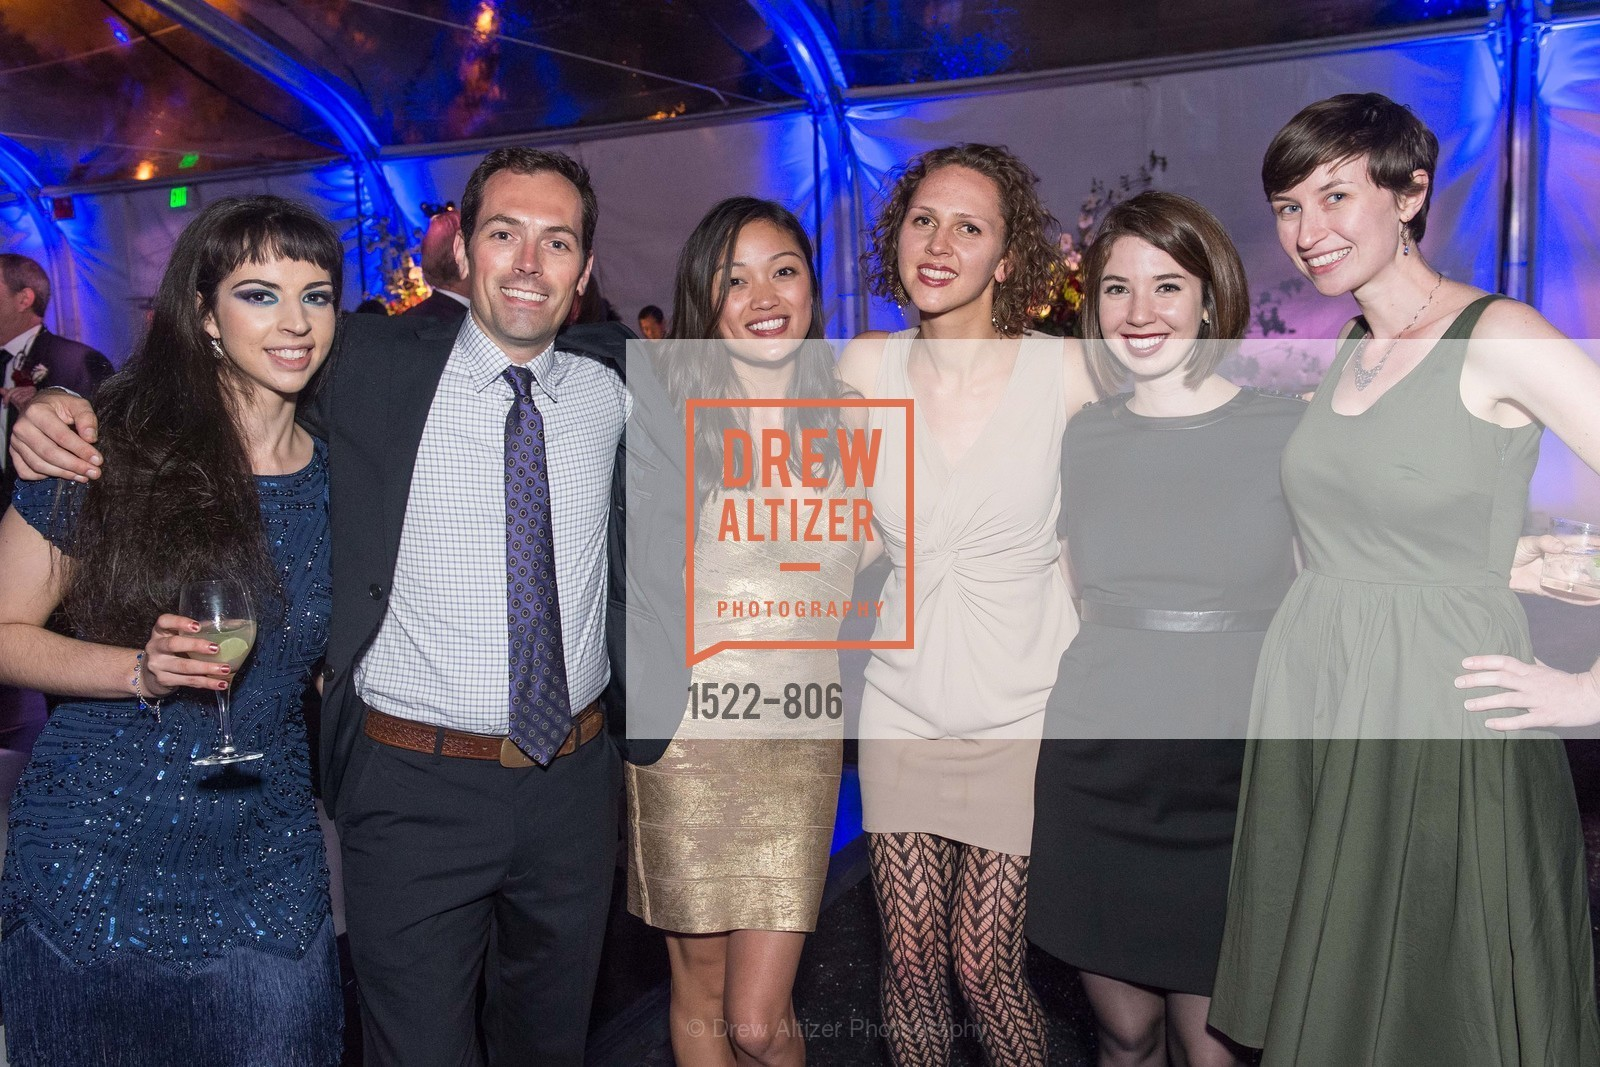 Braden Marks, Abigail Pernares, Hillary Pierce, Mia Barrish, A.C.T. Gala Come Get Stranded, US, April 26th, 2015,Drew Altizer, Drew Altizer Photography, full-service agency, private events, San Francisco photographer, photographer california